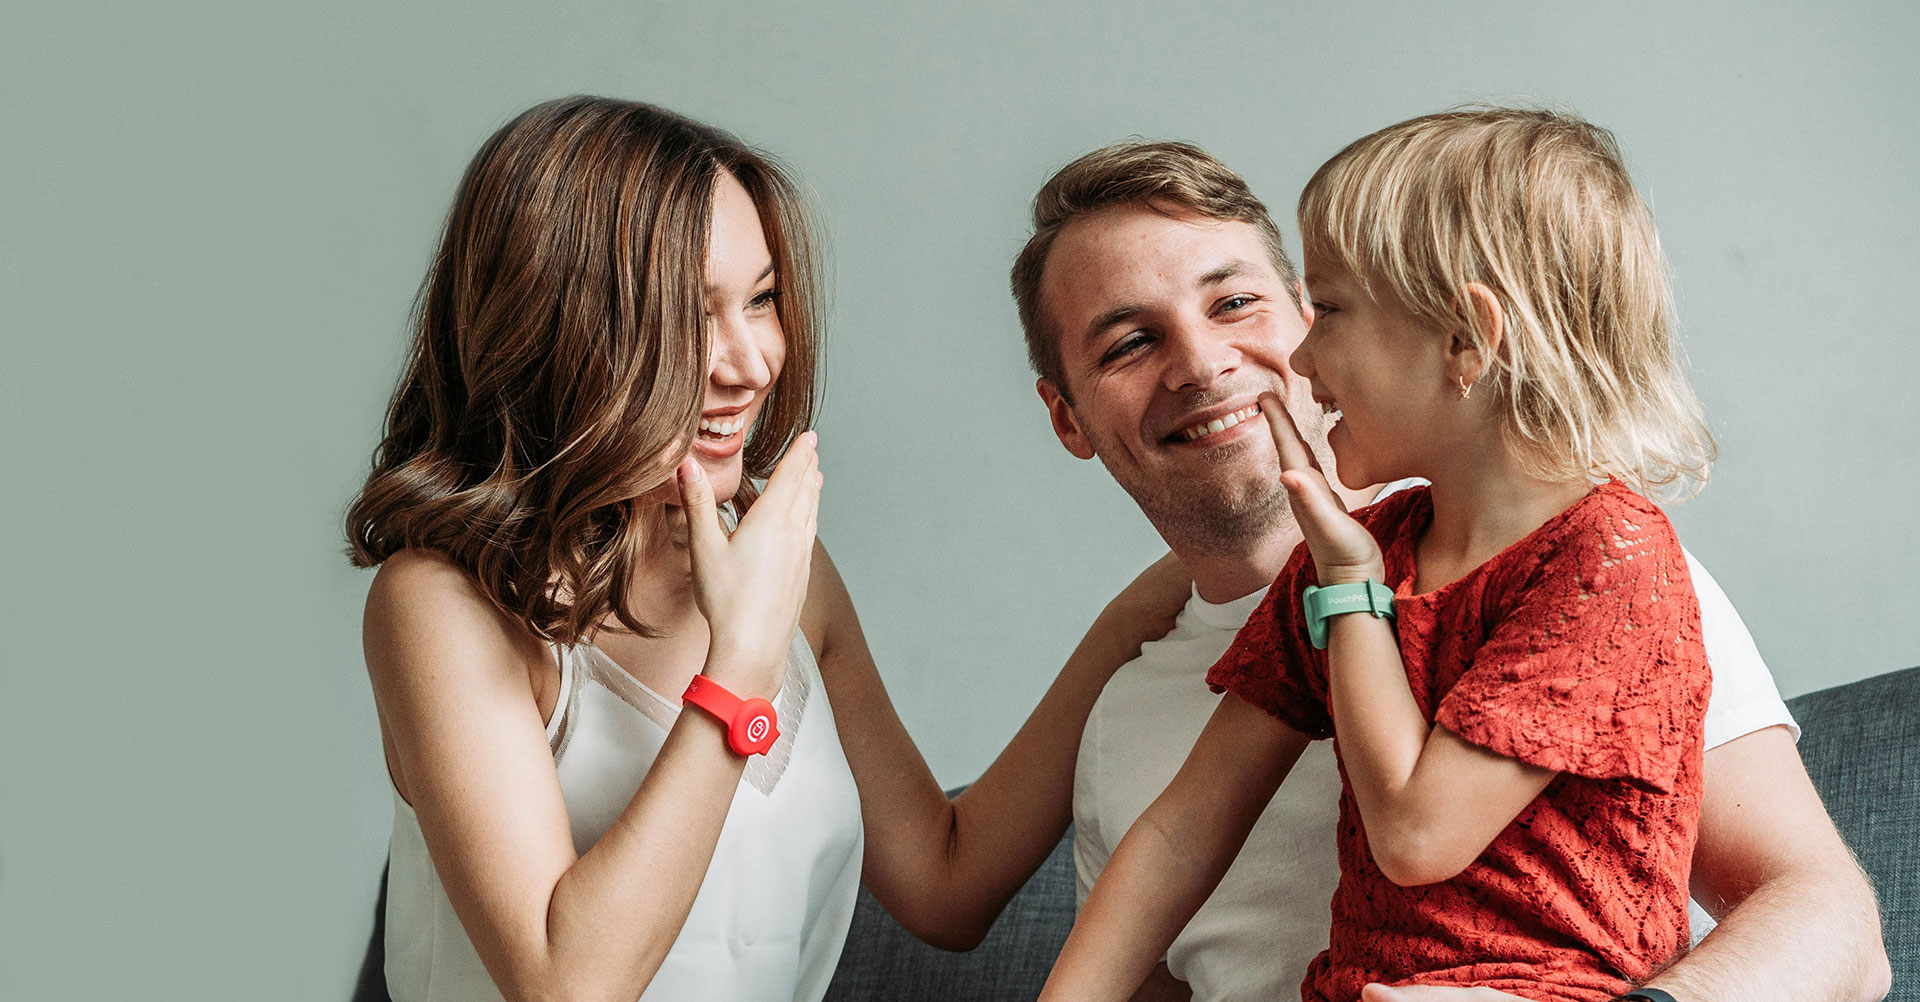 family laughing together bonding time